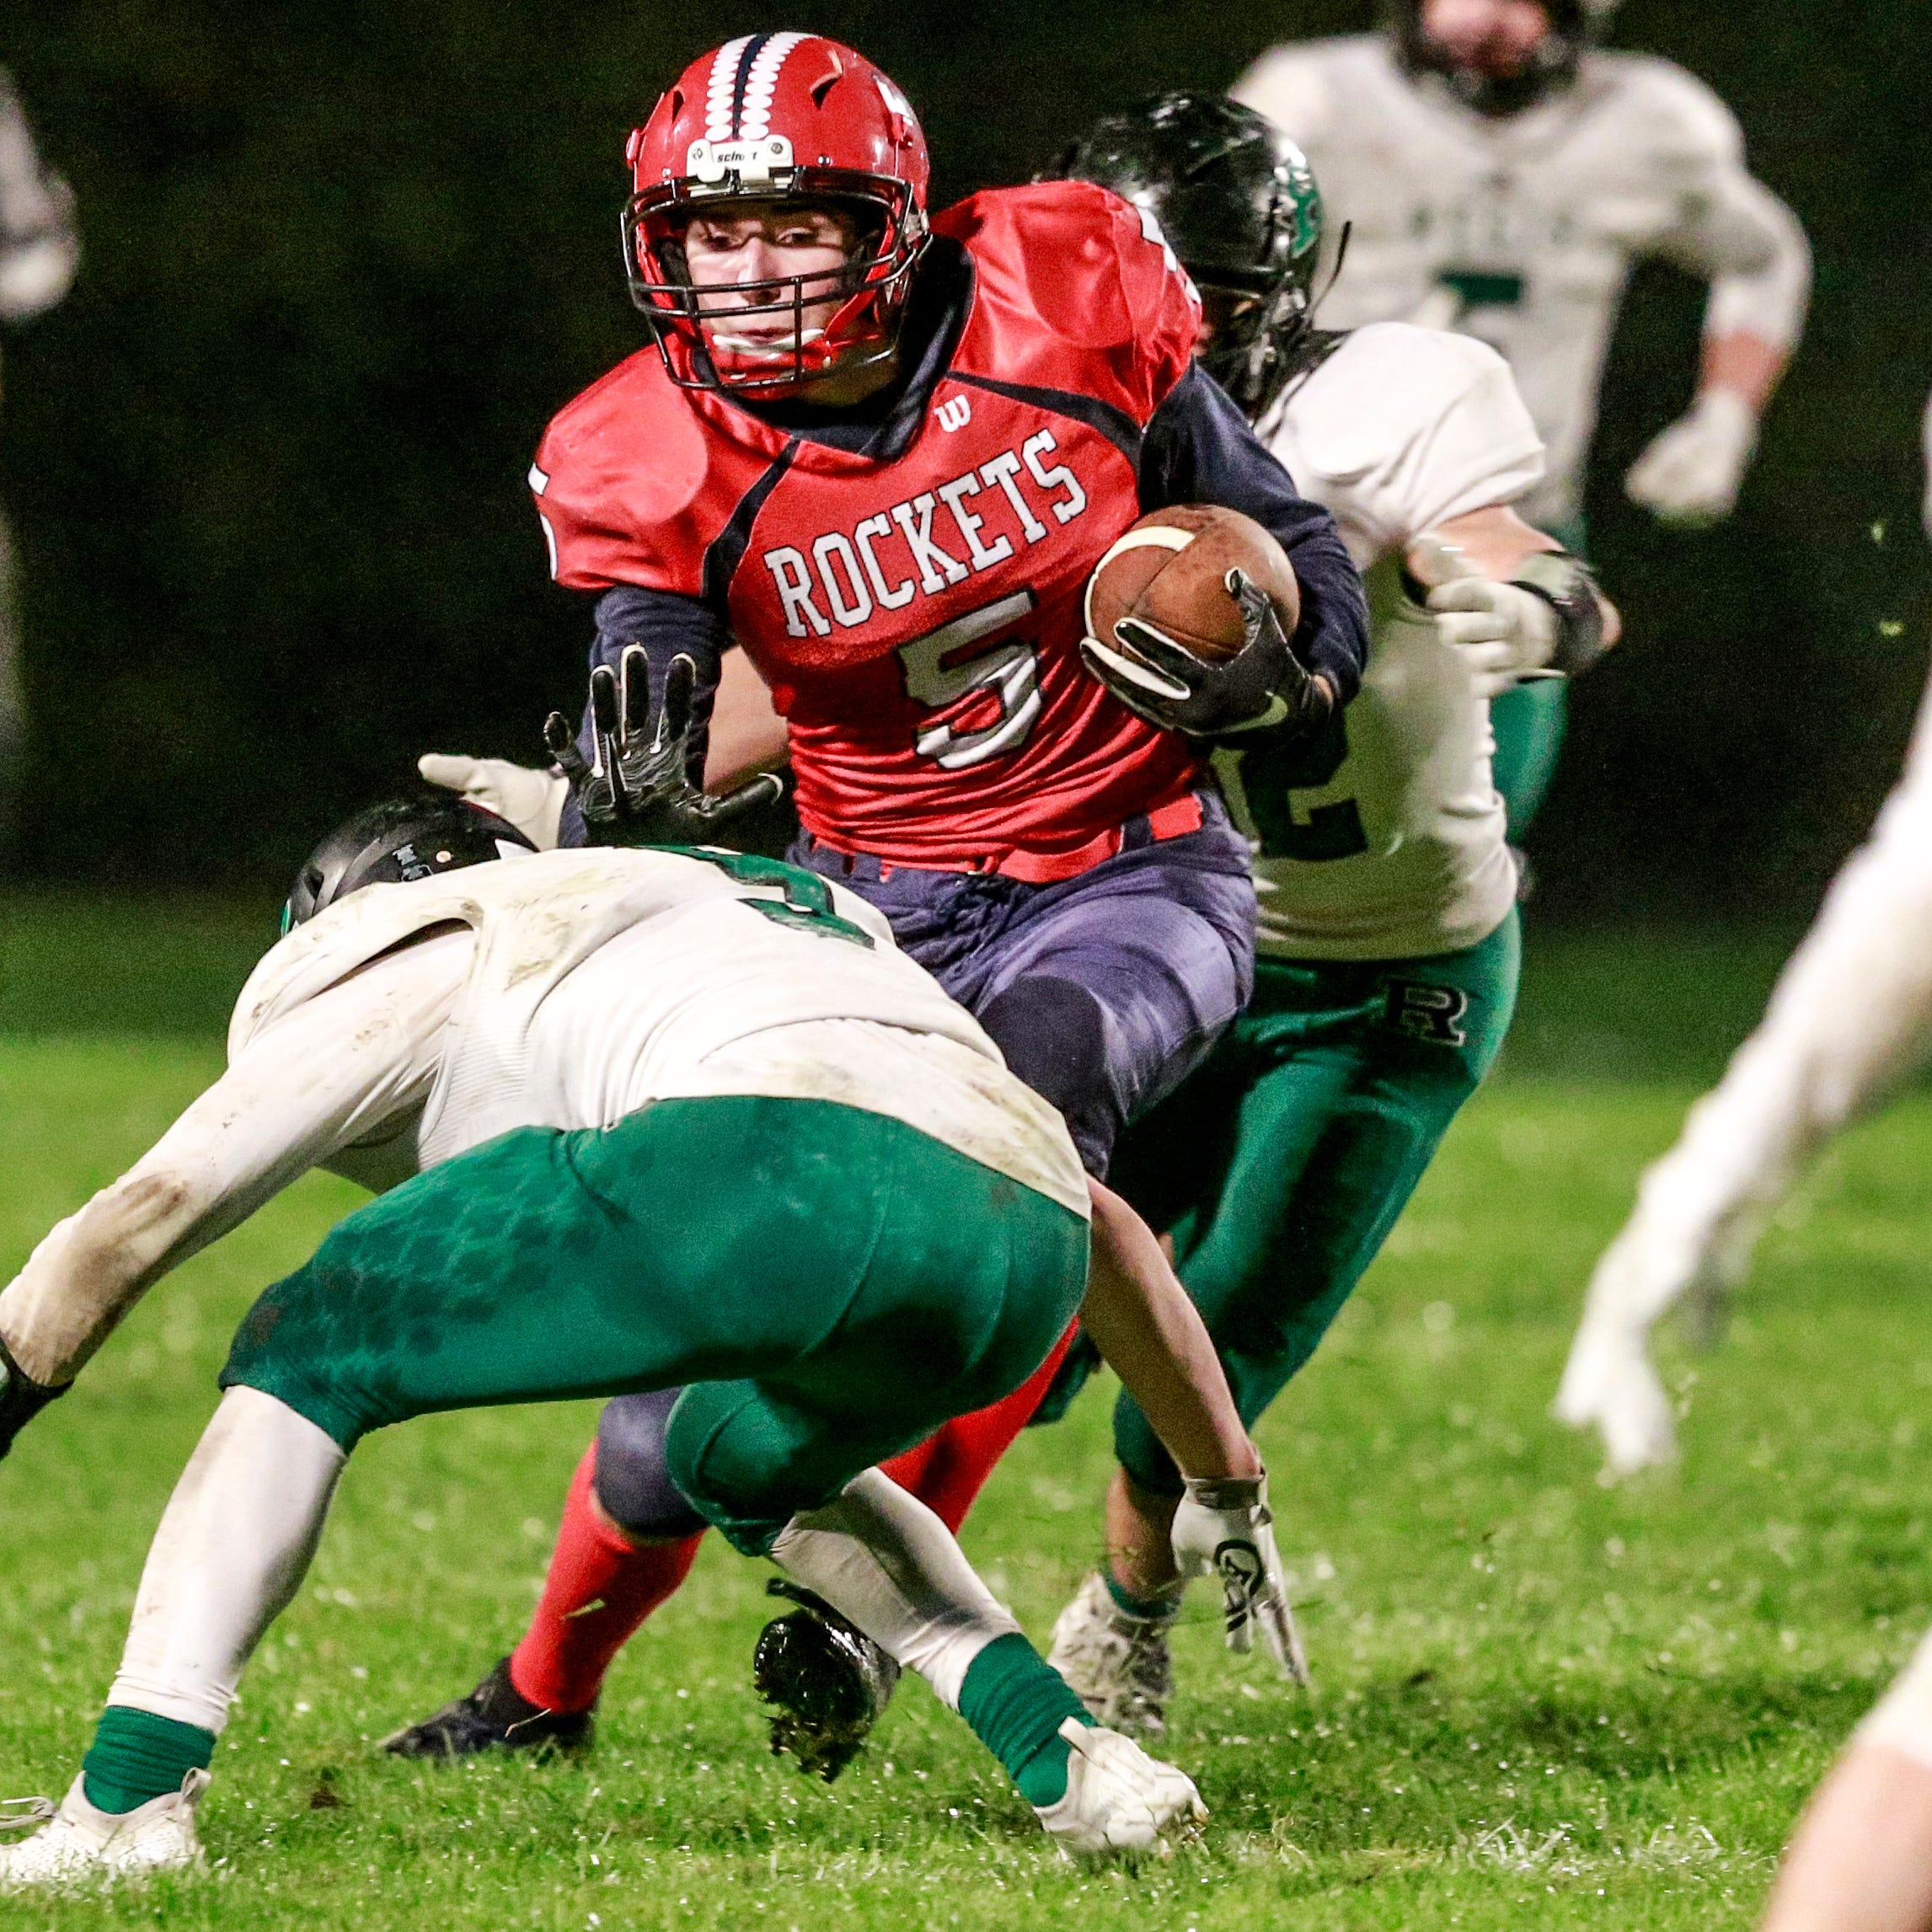 High school football: Regis takes Cloverbelt showdown, hands Spencer/CC first loss of year